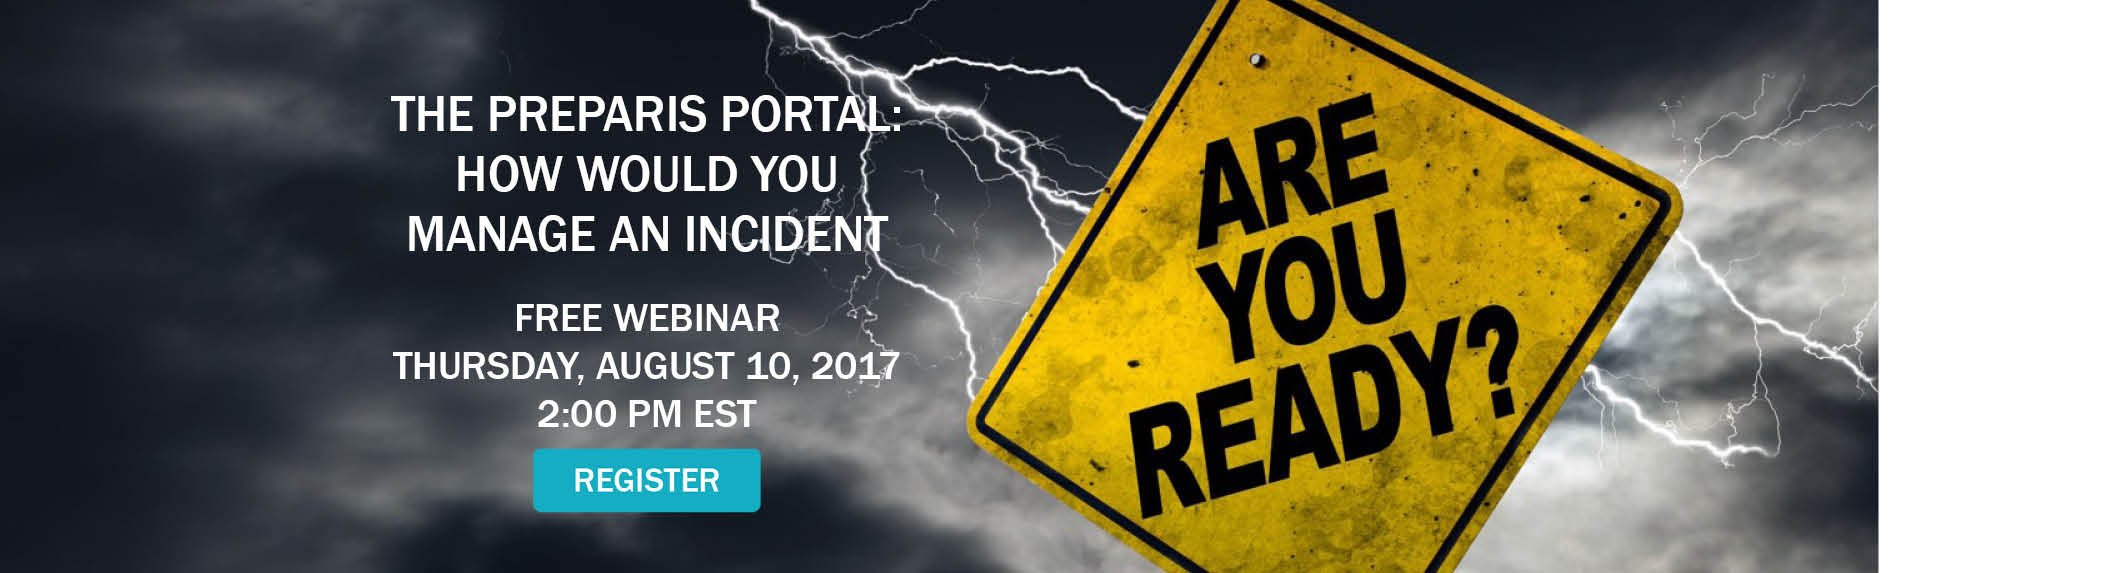 The-Preparis-Portal-How-Would-YOU-Manage-an-Incident-Webinar-HERO-Image-1